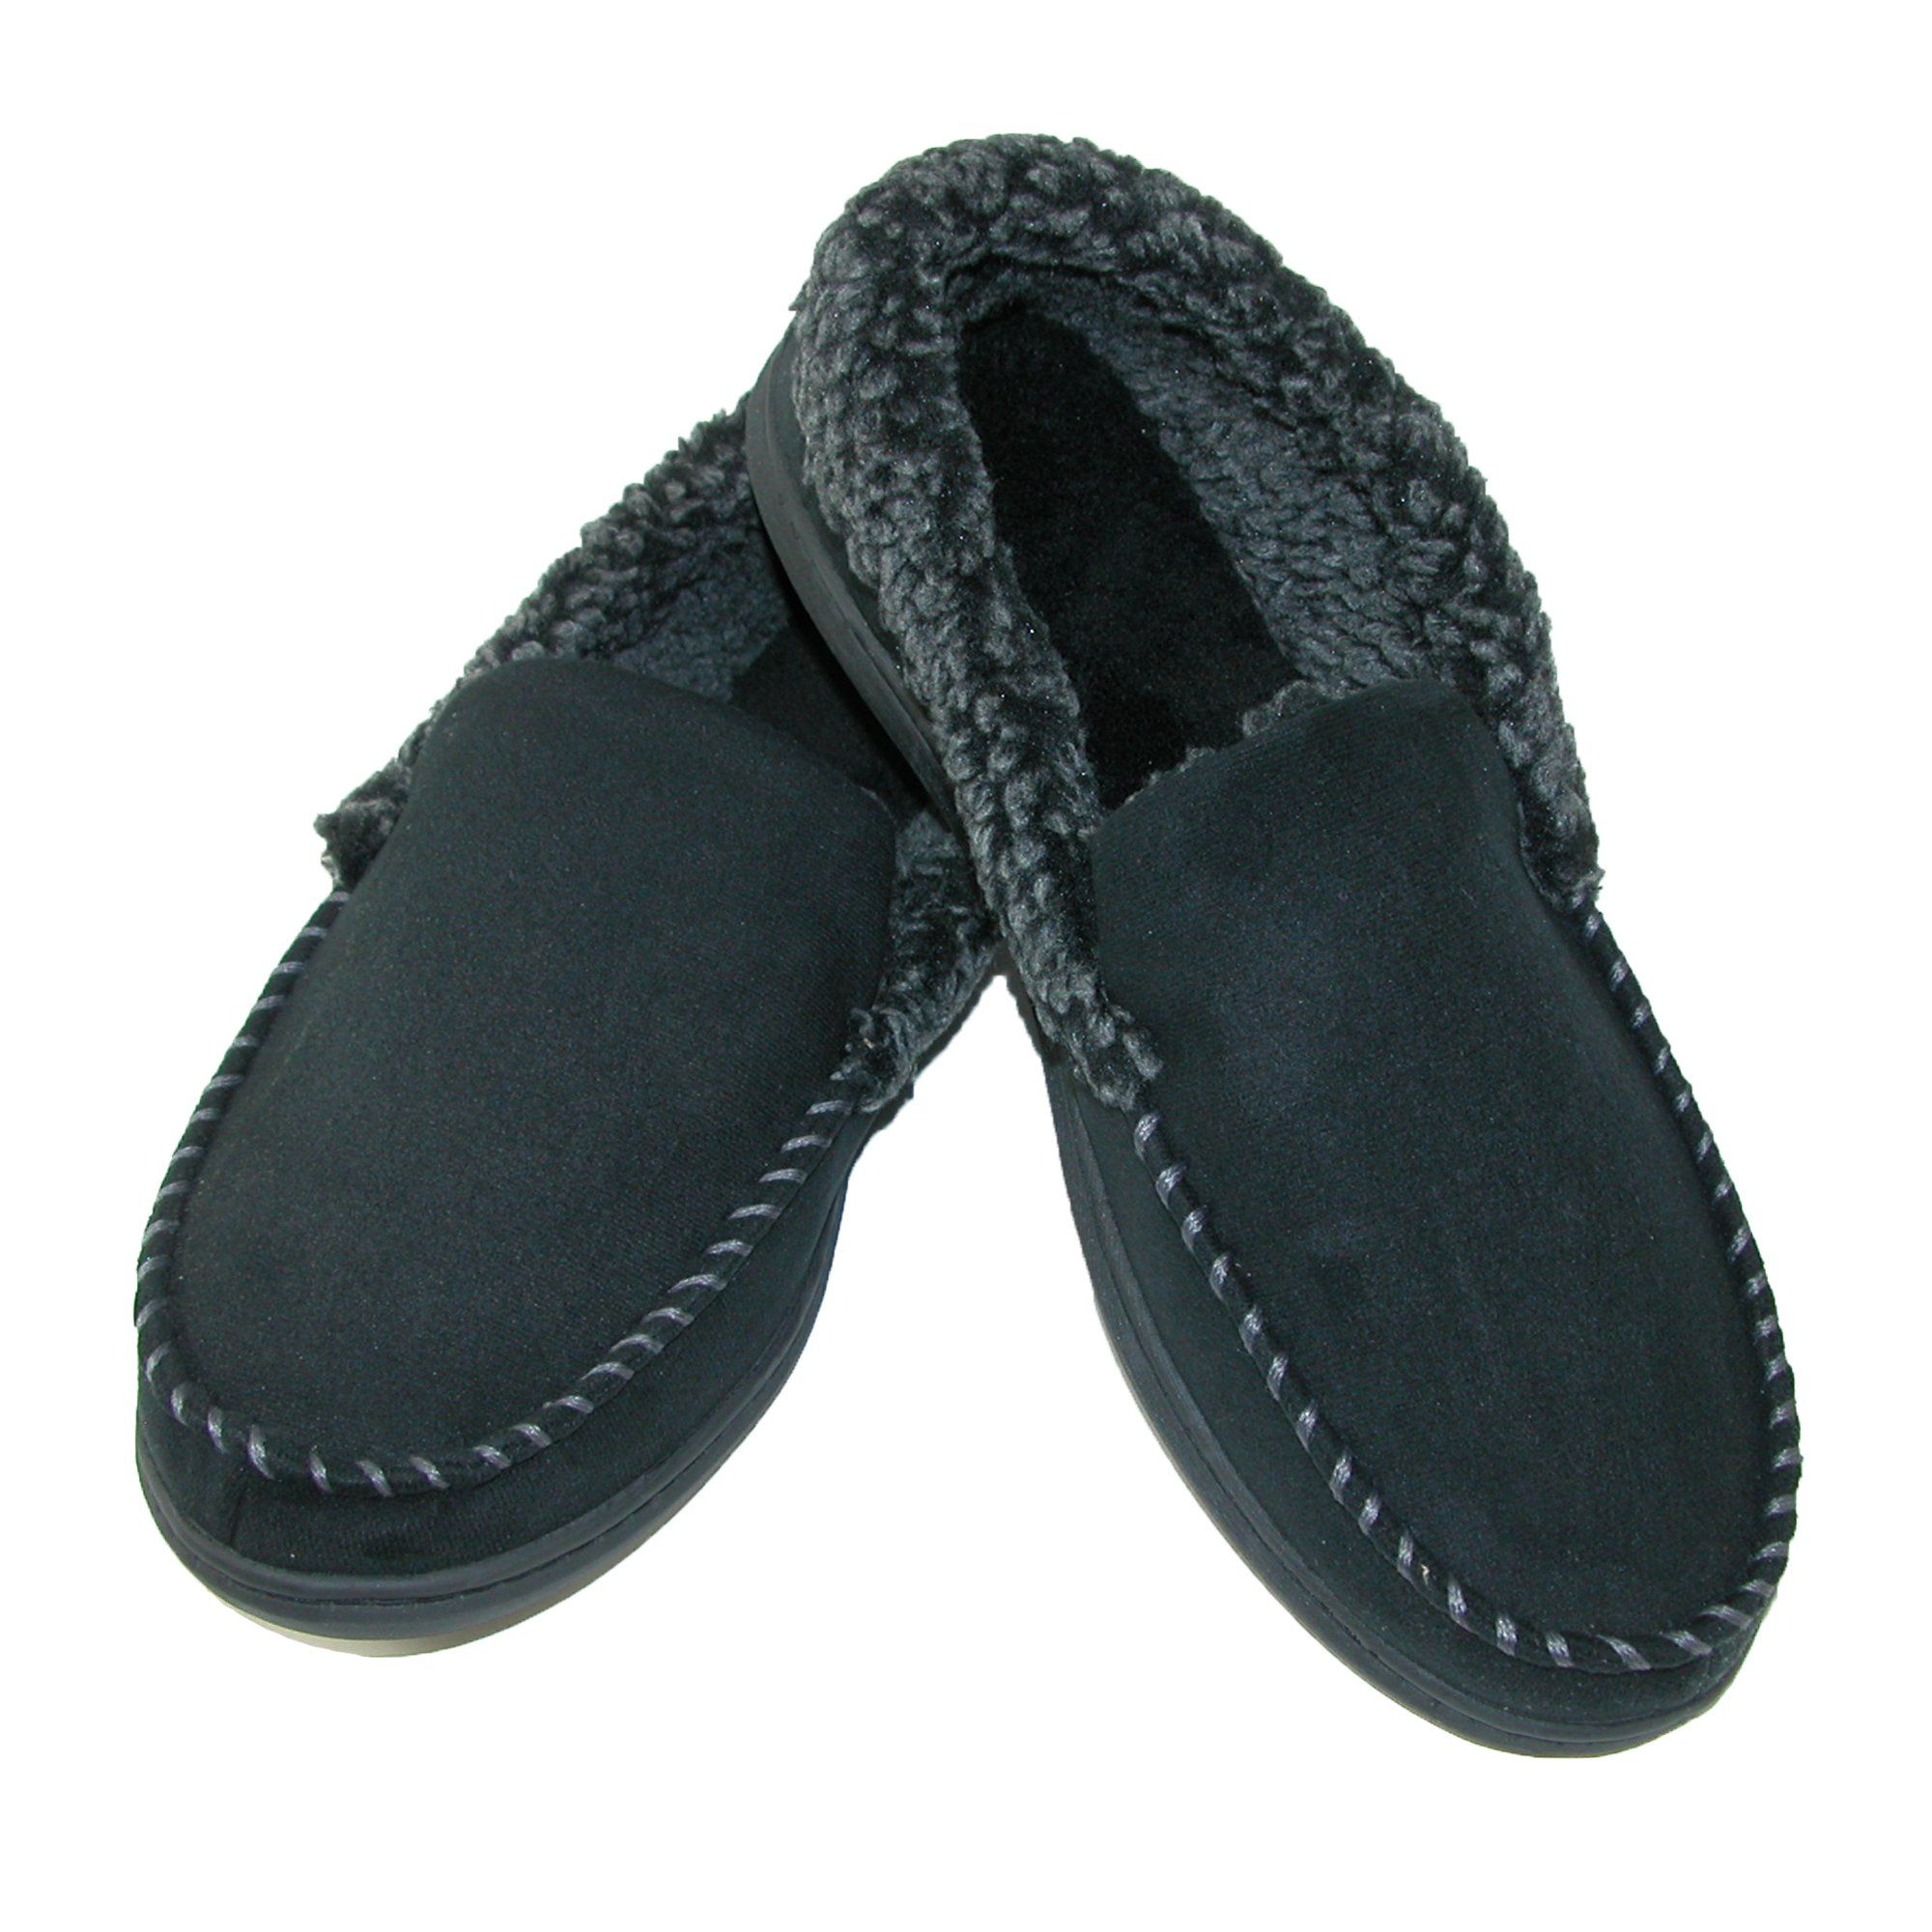 5b62ed757 Dearfoams Men's Microsuede Moccasin Slippers with Memory Foam